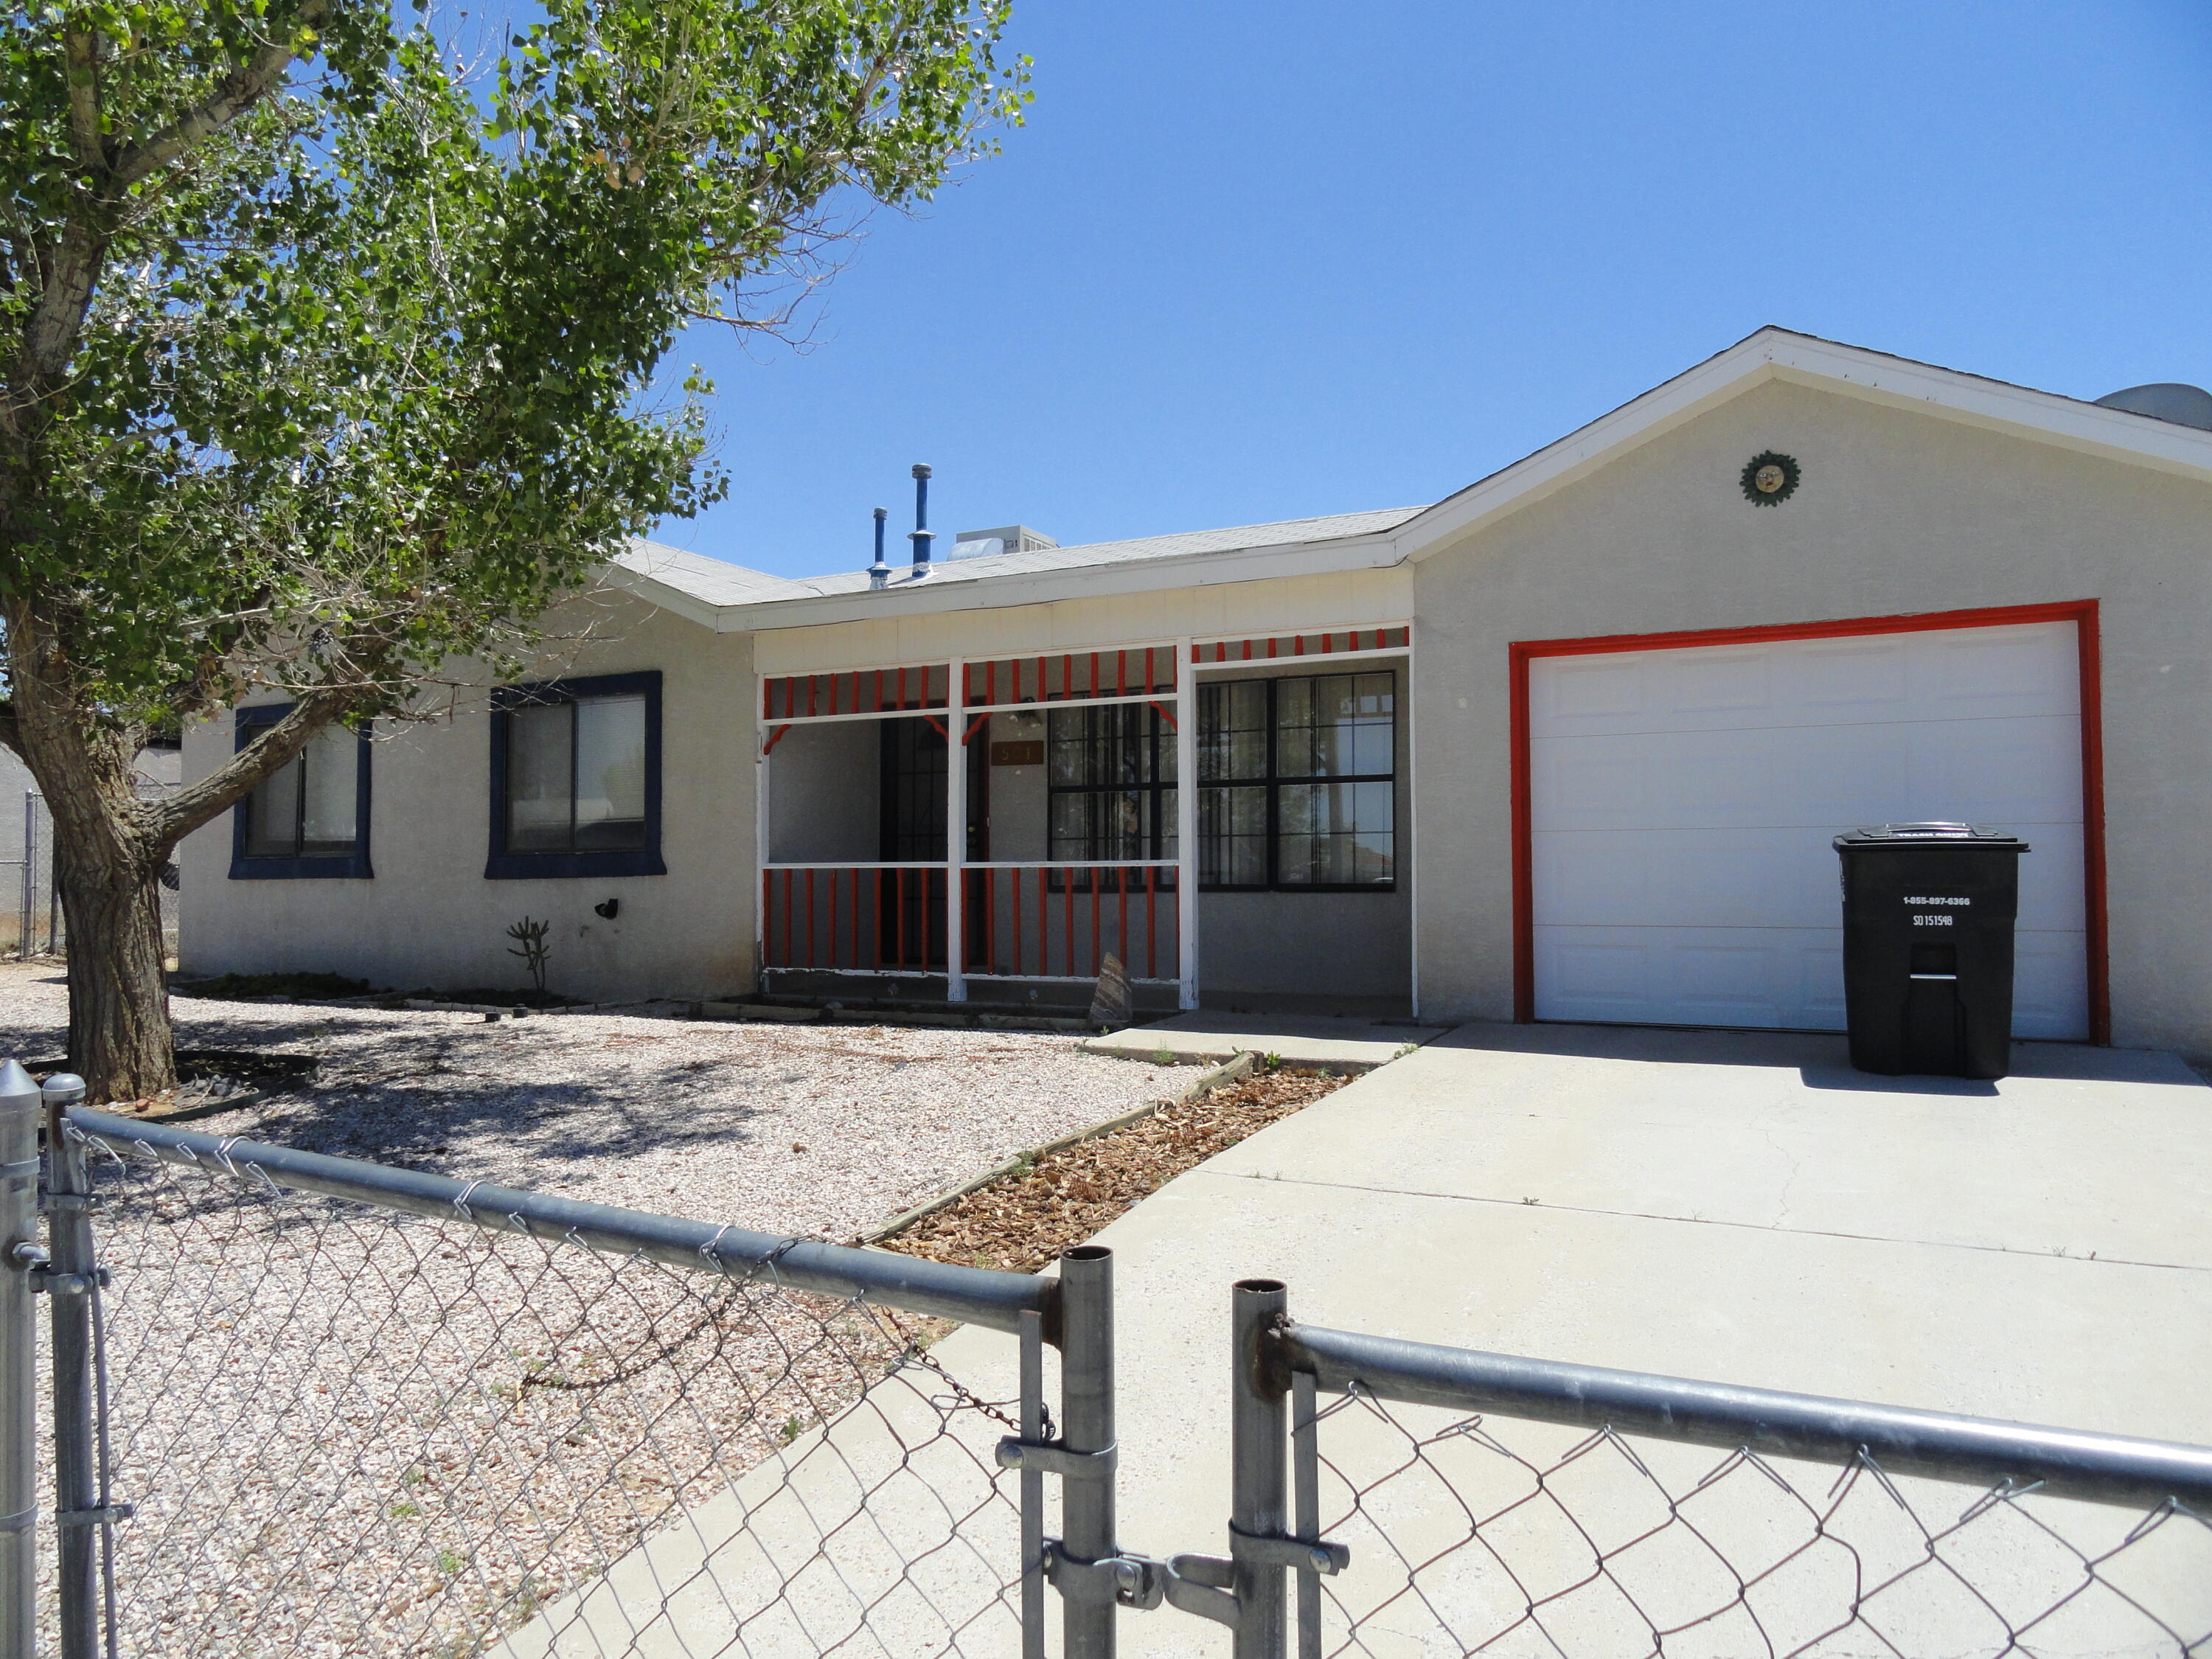 Adorable home near Tierra Del Sol Golf Course. Come see this move in ready home in Rio Communities. 3 Generous bedrooms, 1 and 3/4 baths located on a huge corner lot. Fenced, cross fenced and offers double gated back yard access. New roof will be completed soon!